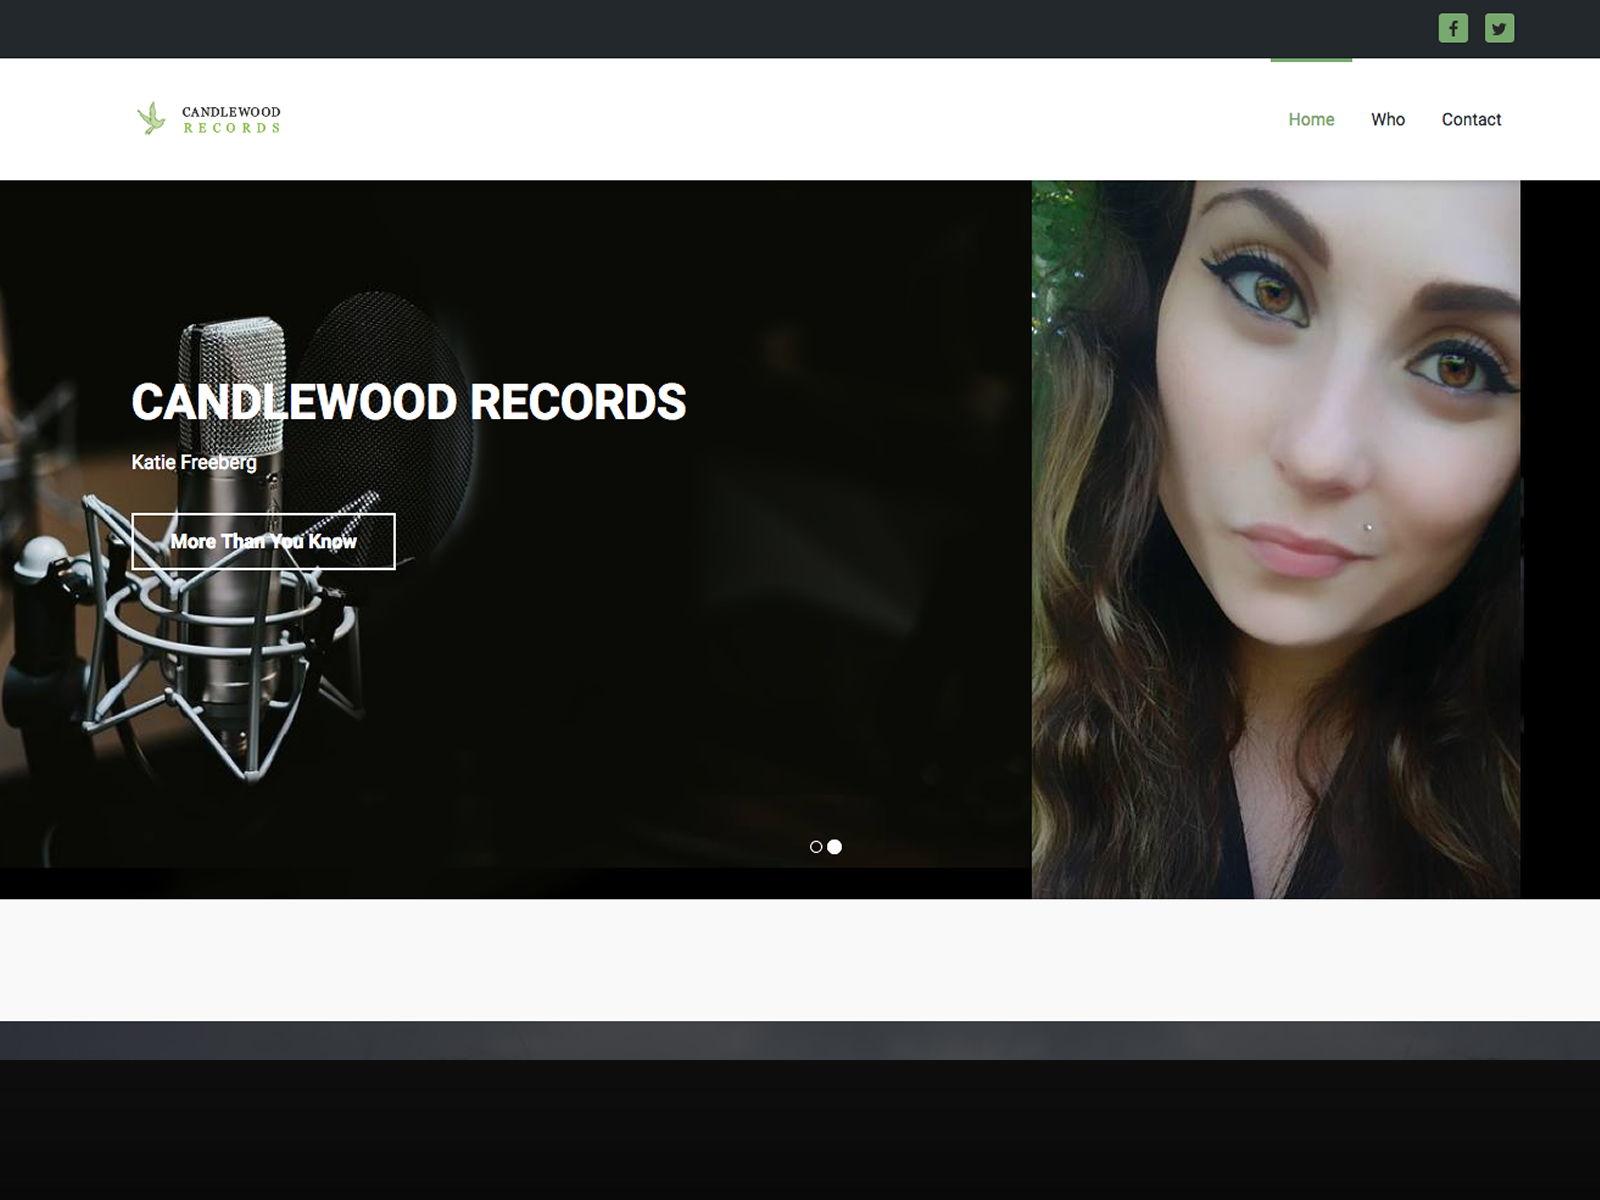 Candlewood Records